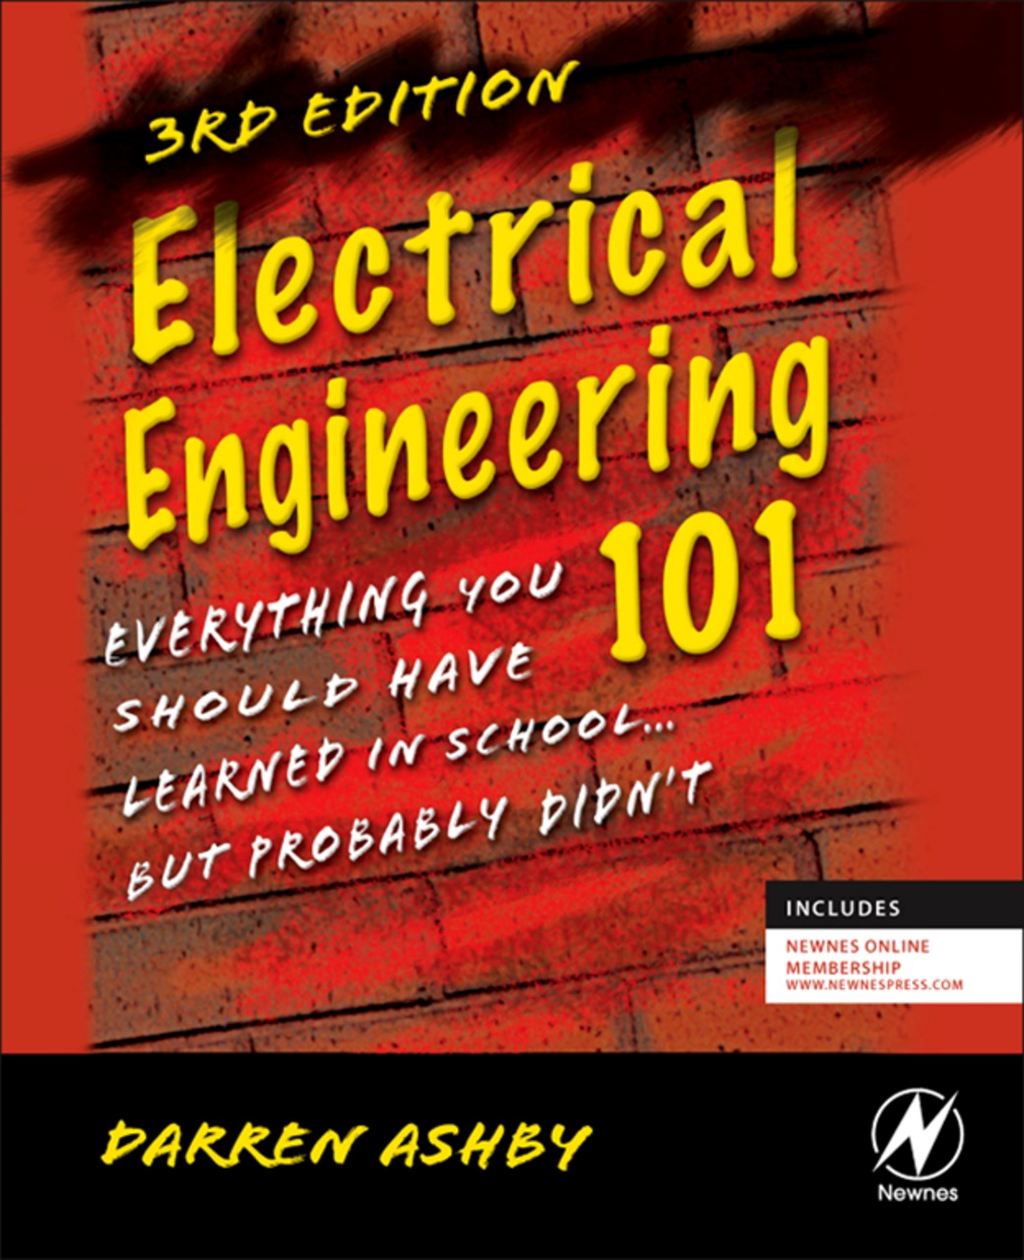 Electrical Engineering 101 Everything You Should Have Learned in School...but Probably Didn't